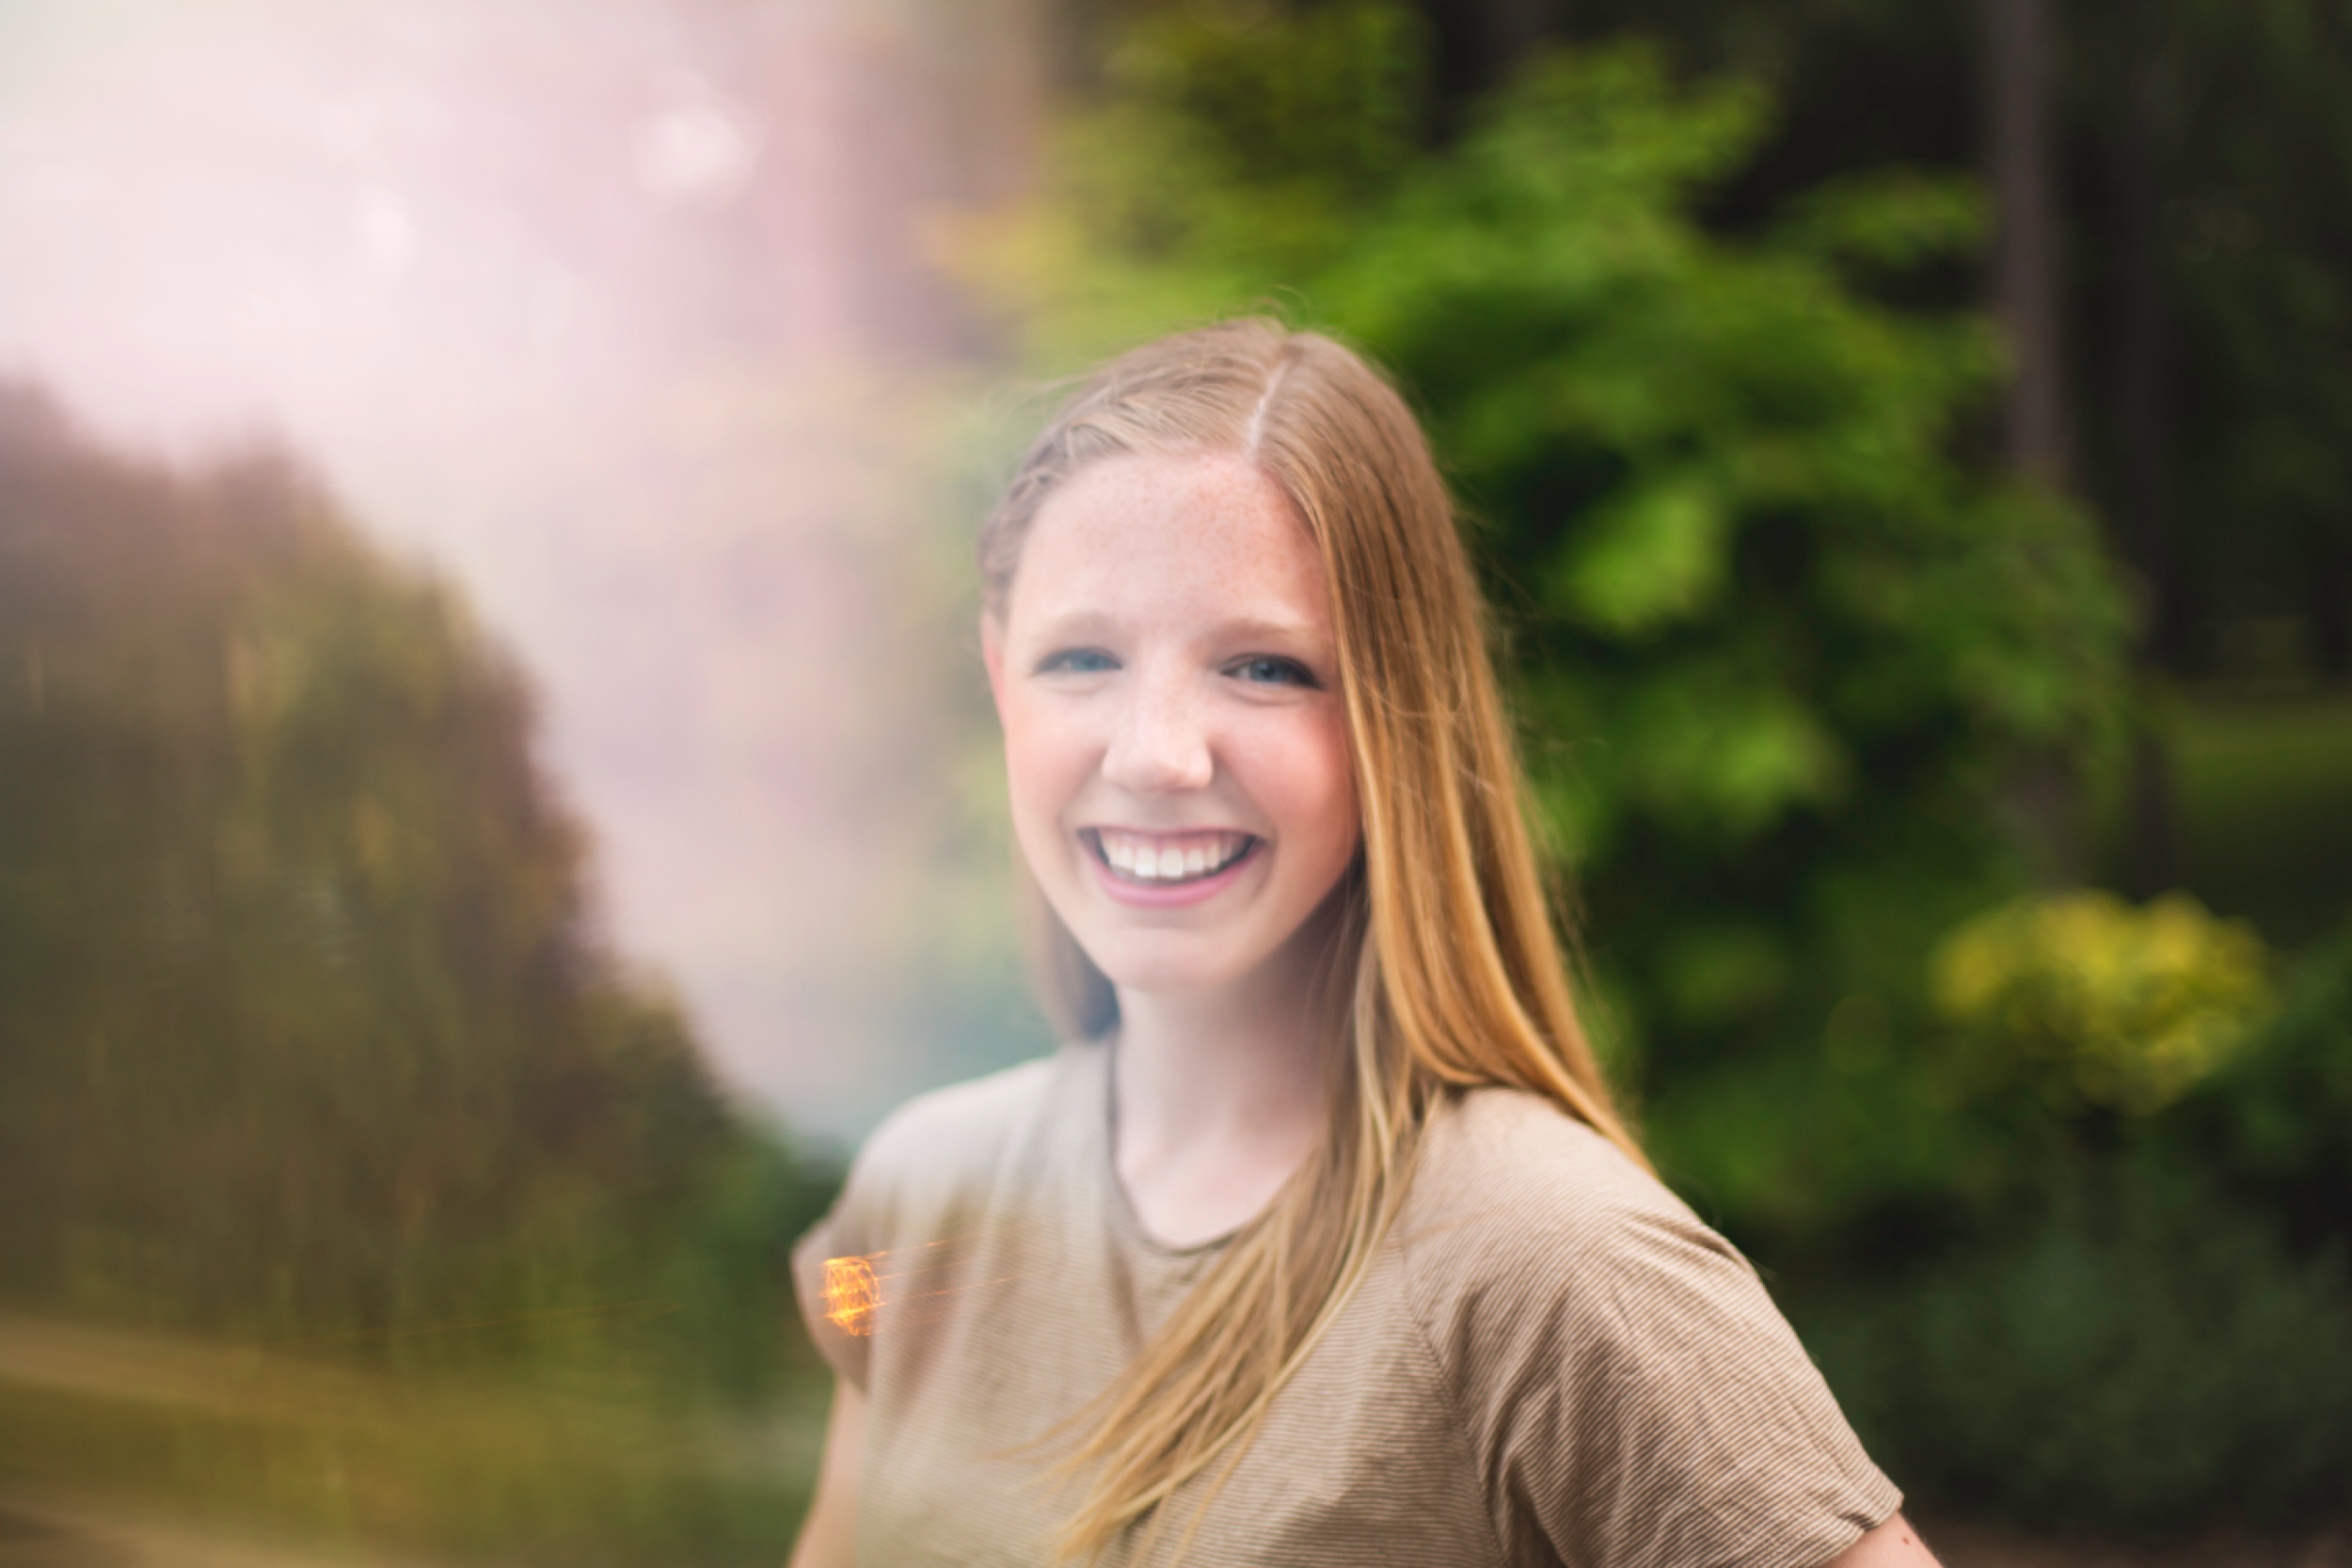 Hamilton-Portrait-Photographer-Senior-Portraits-Highschool-Graduation-Moments-by-Lauren-Photography-Burlington-Oakville-Toronto-Niagara-Photographer-Image-4.png